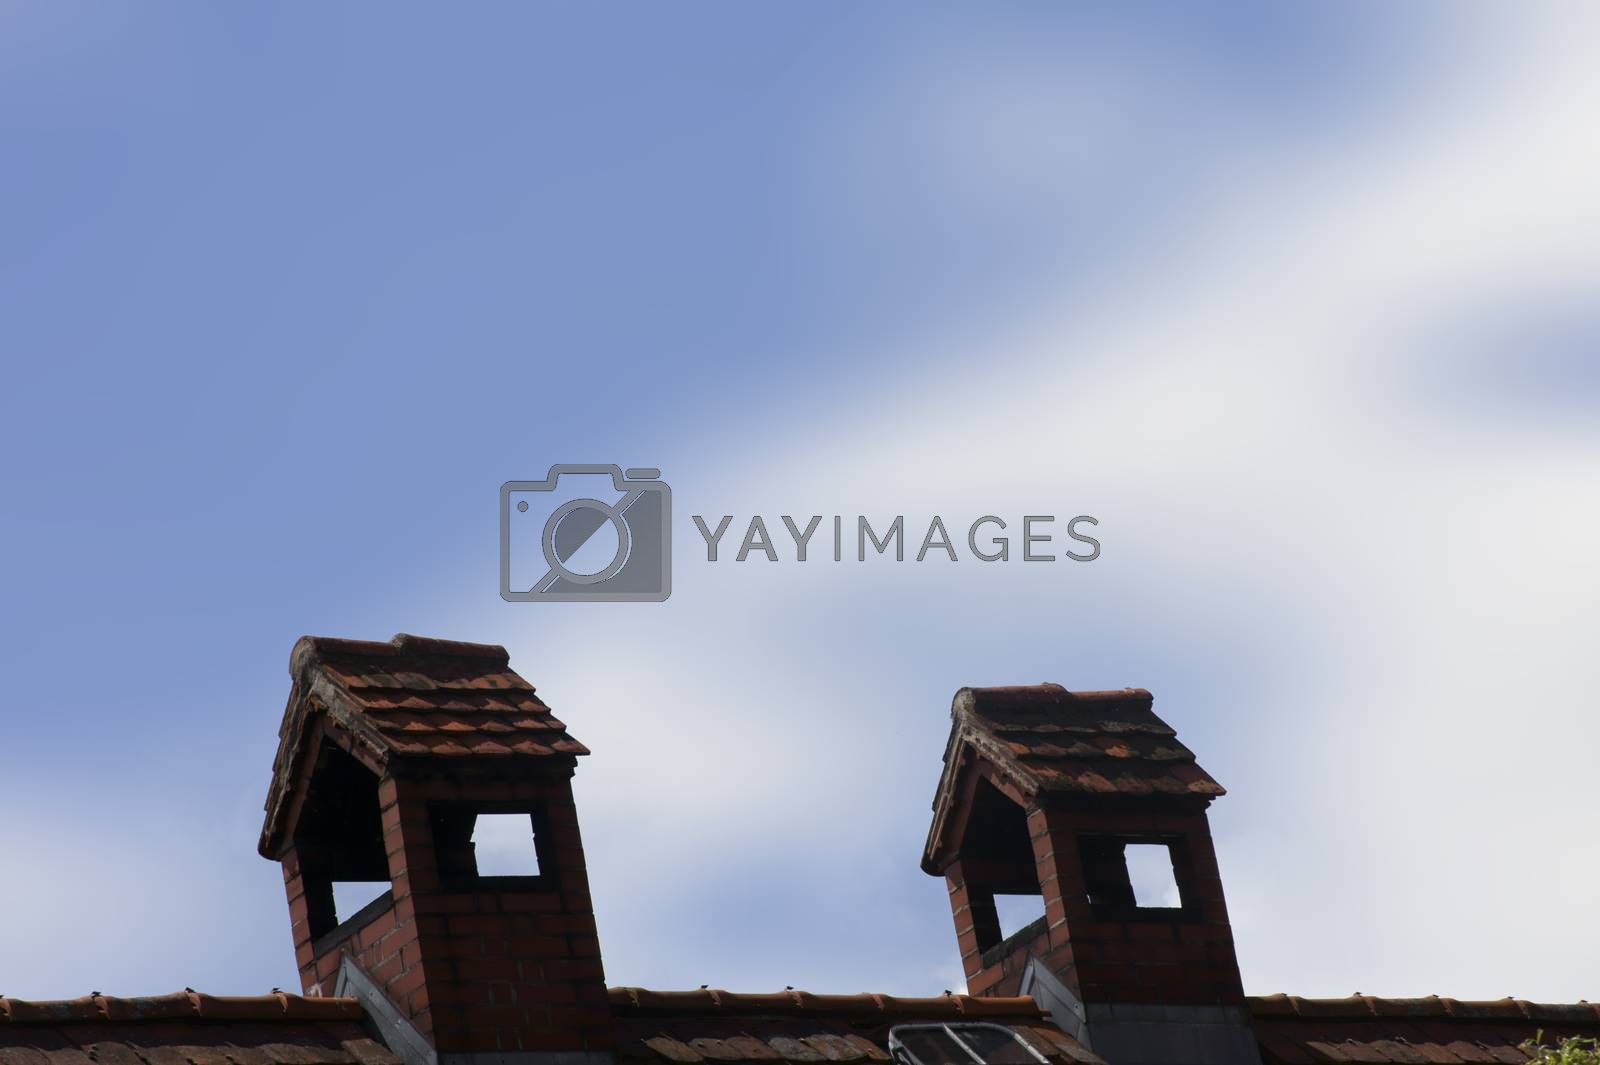 The close-up of a bizarre brick chimney on the roof of a house.